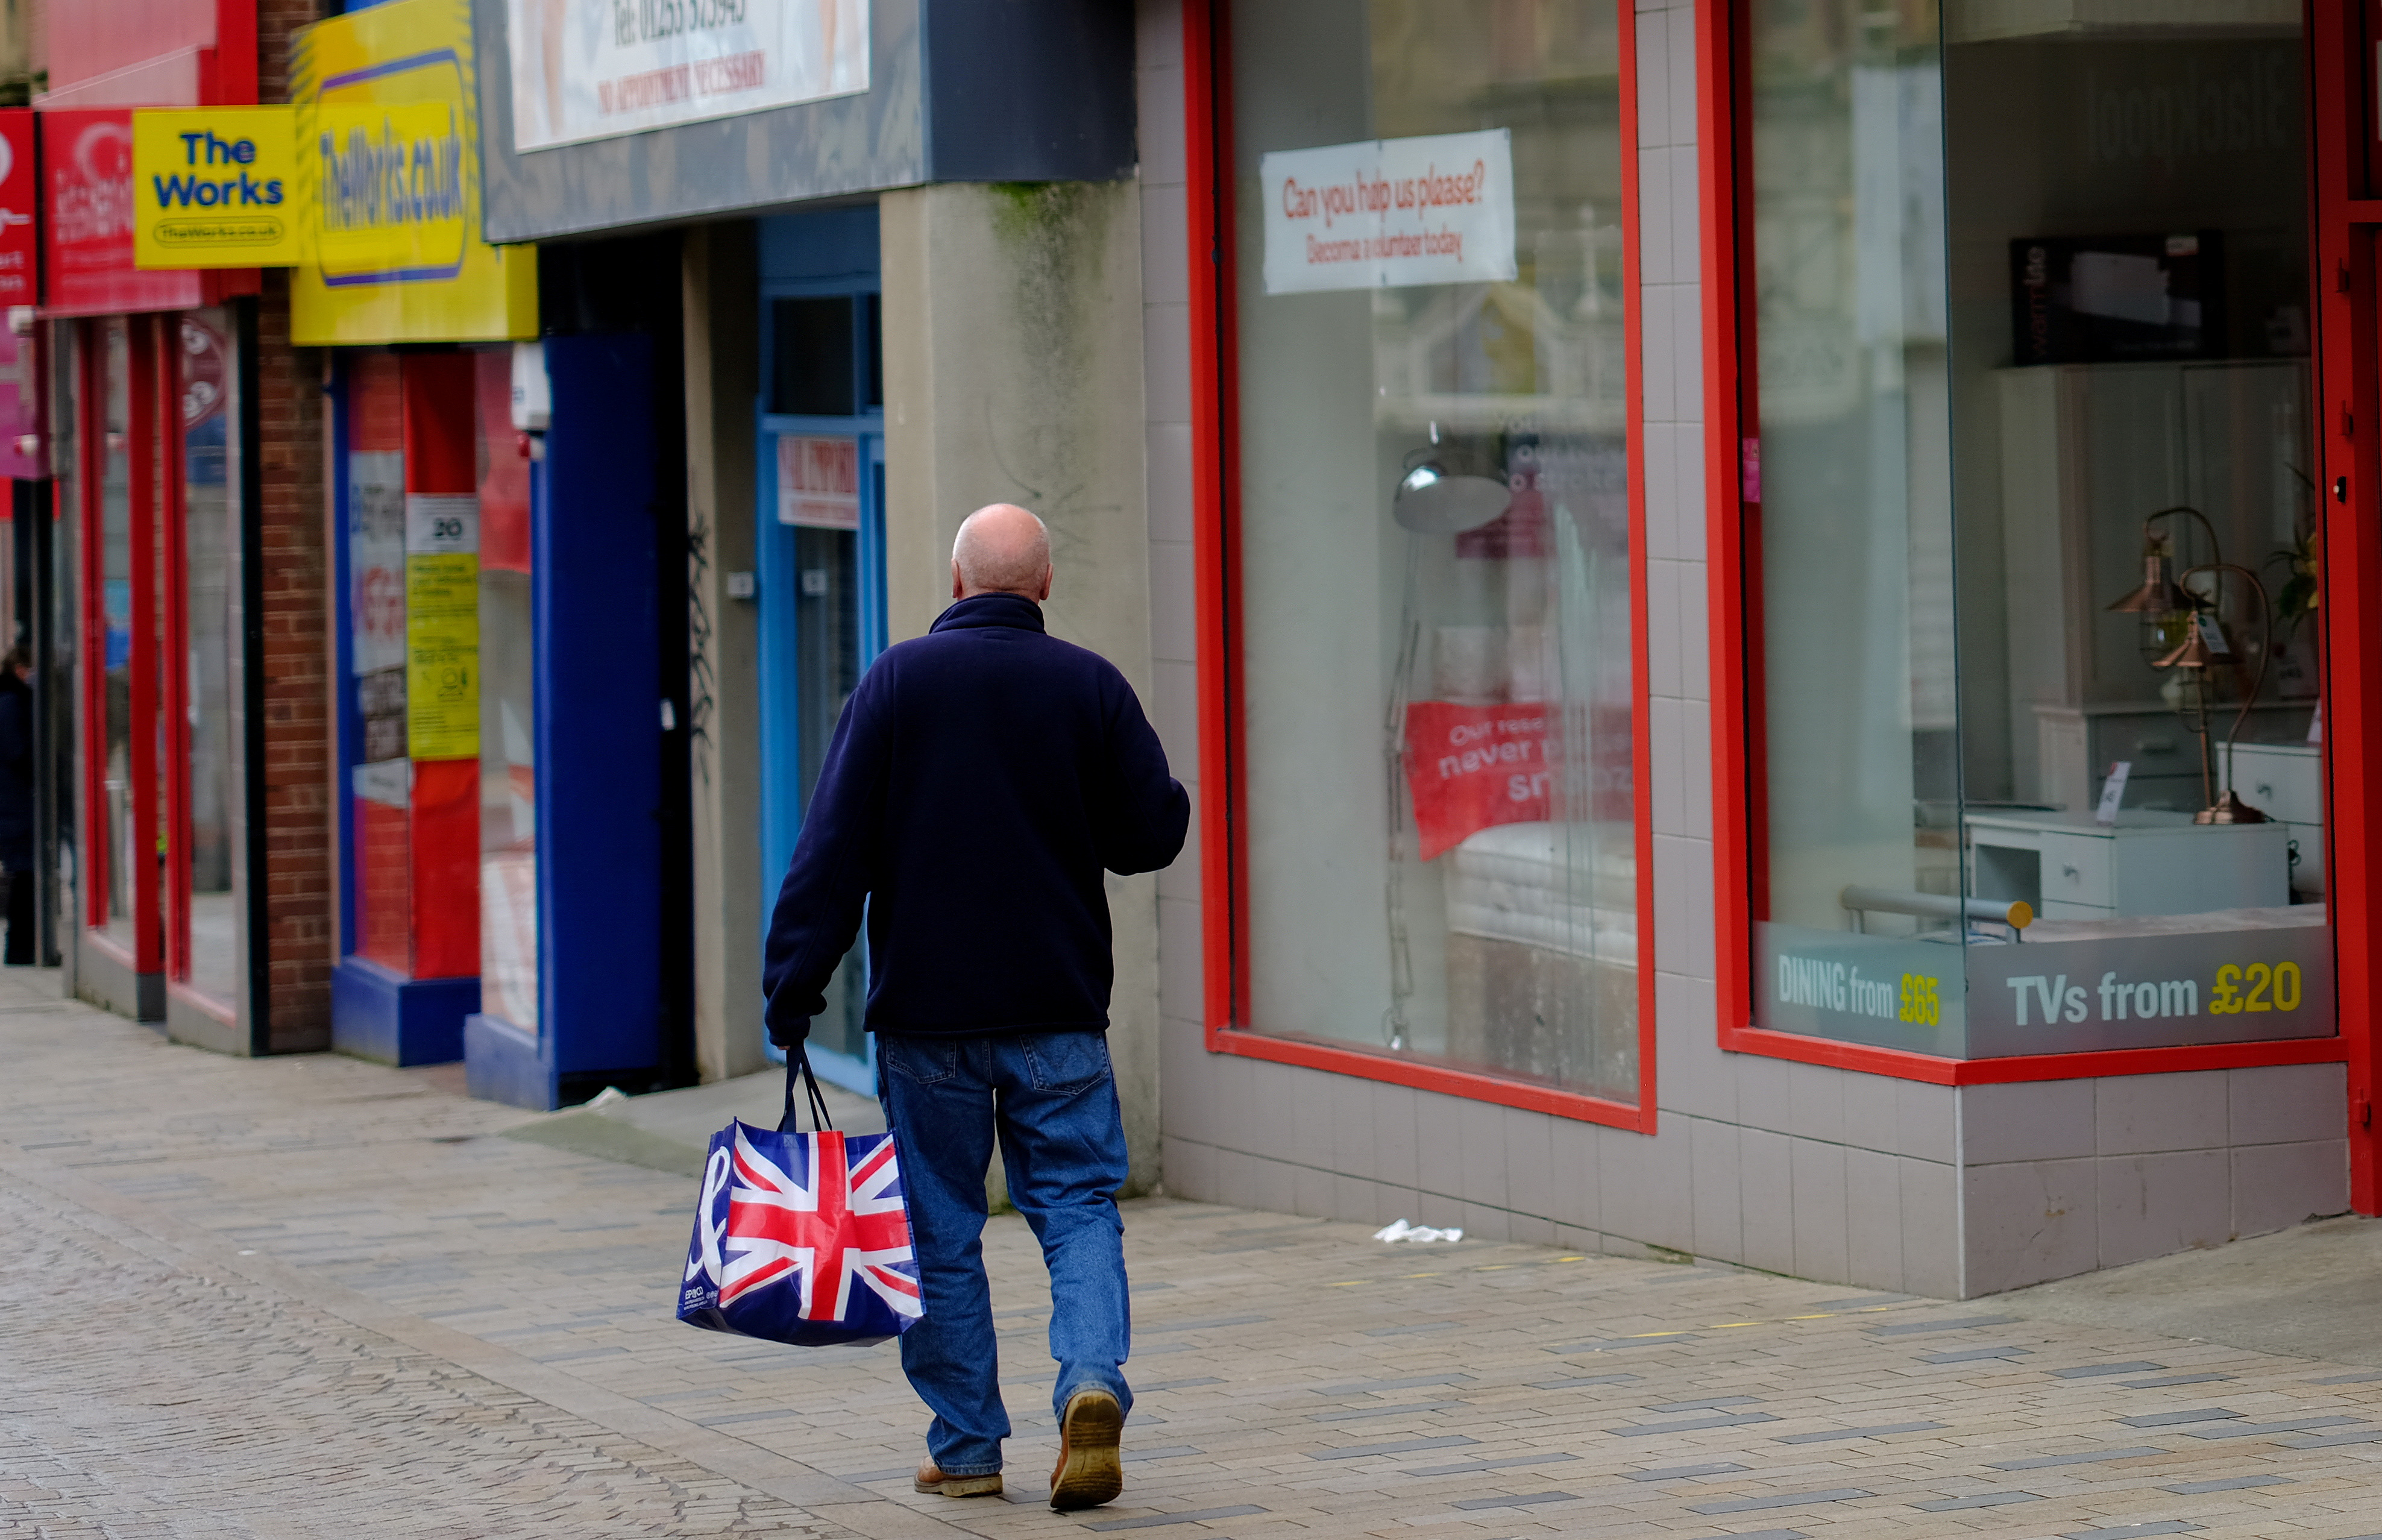 A man carries a Union Jack themed shopping bag as he walks along an empty shopping street in Blackpool, Britain, March 9, 2021. REUTERS/Phil Noble/File Photo